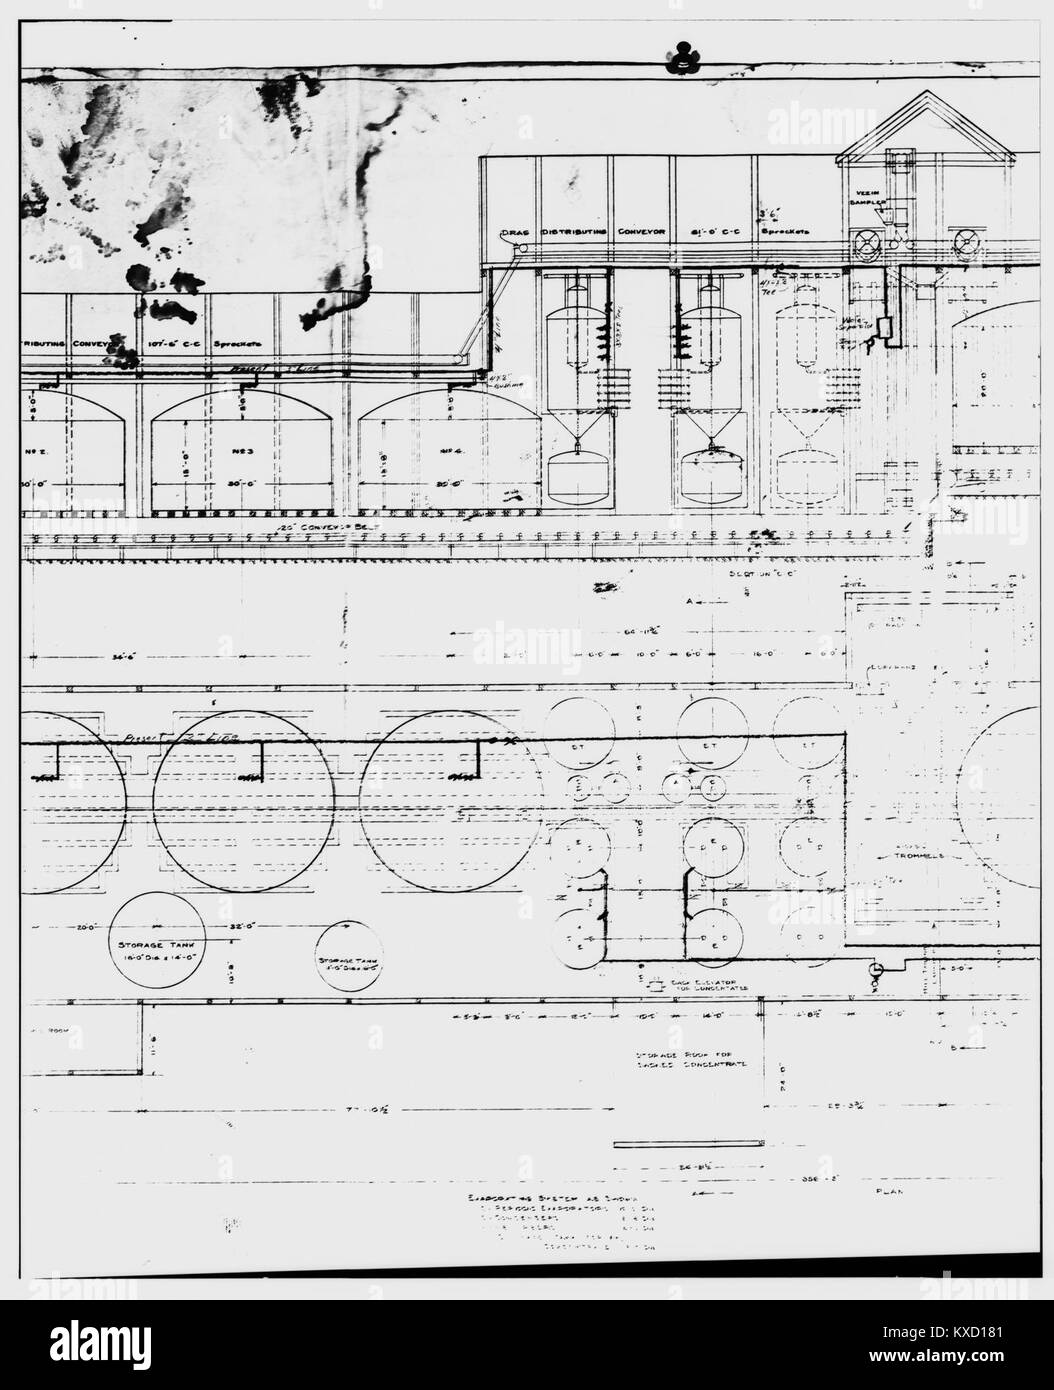 48. PHOTOCOPY OF DRAWING, AMMONIA LEACHING PLANT - Kennecott Copper Corporation, On Copper River ^ Northwestern - Stock Image